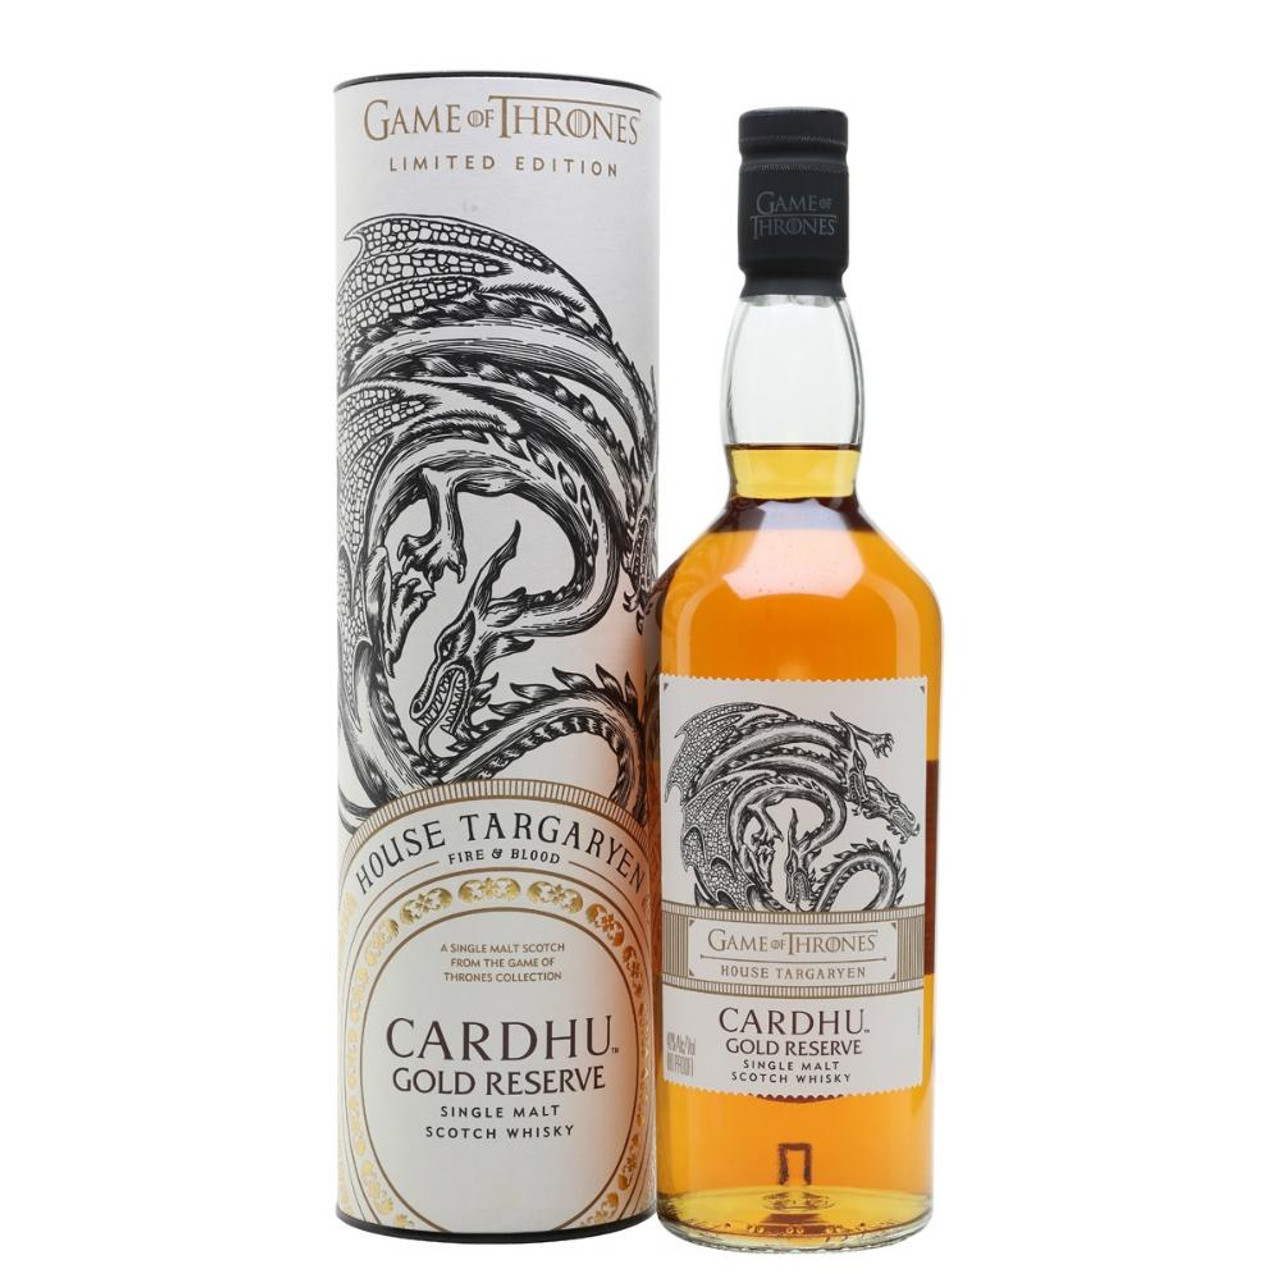 Cardhu Gold Reserve House Targaryen is one of eight single malts Scotch whiskies made to commemorate the eighth and final season of Game of Thrones. This no-age statement single malt bears the sigil of House Targaryen - a three-headed dragon. Fueled by the same fiery spirit of the fierce female leadership of Daenerys Targaryen, this single malt celebrates legendary women and their unwavering perseverance.